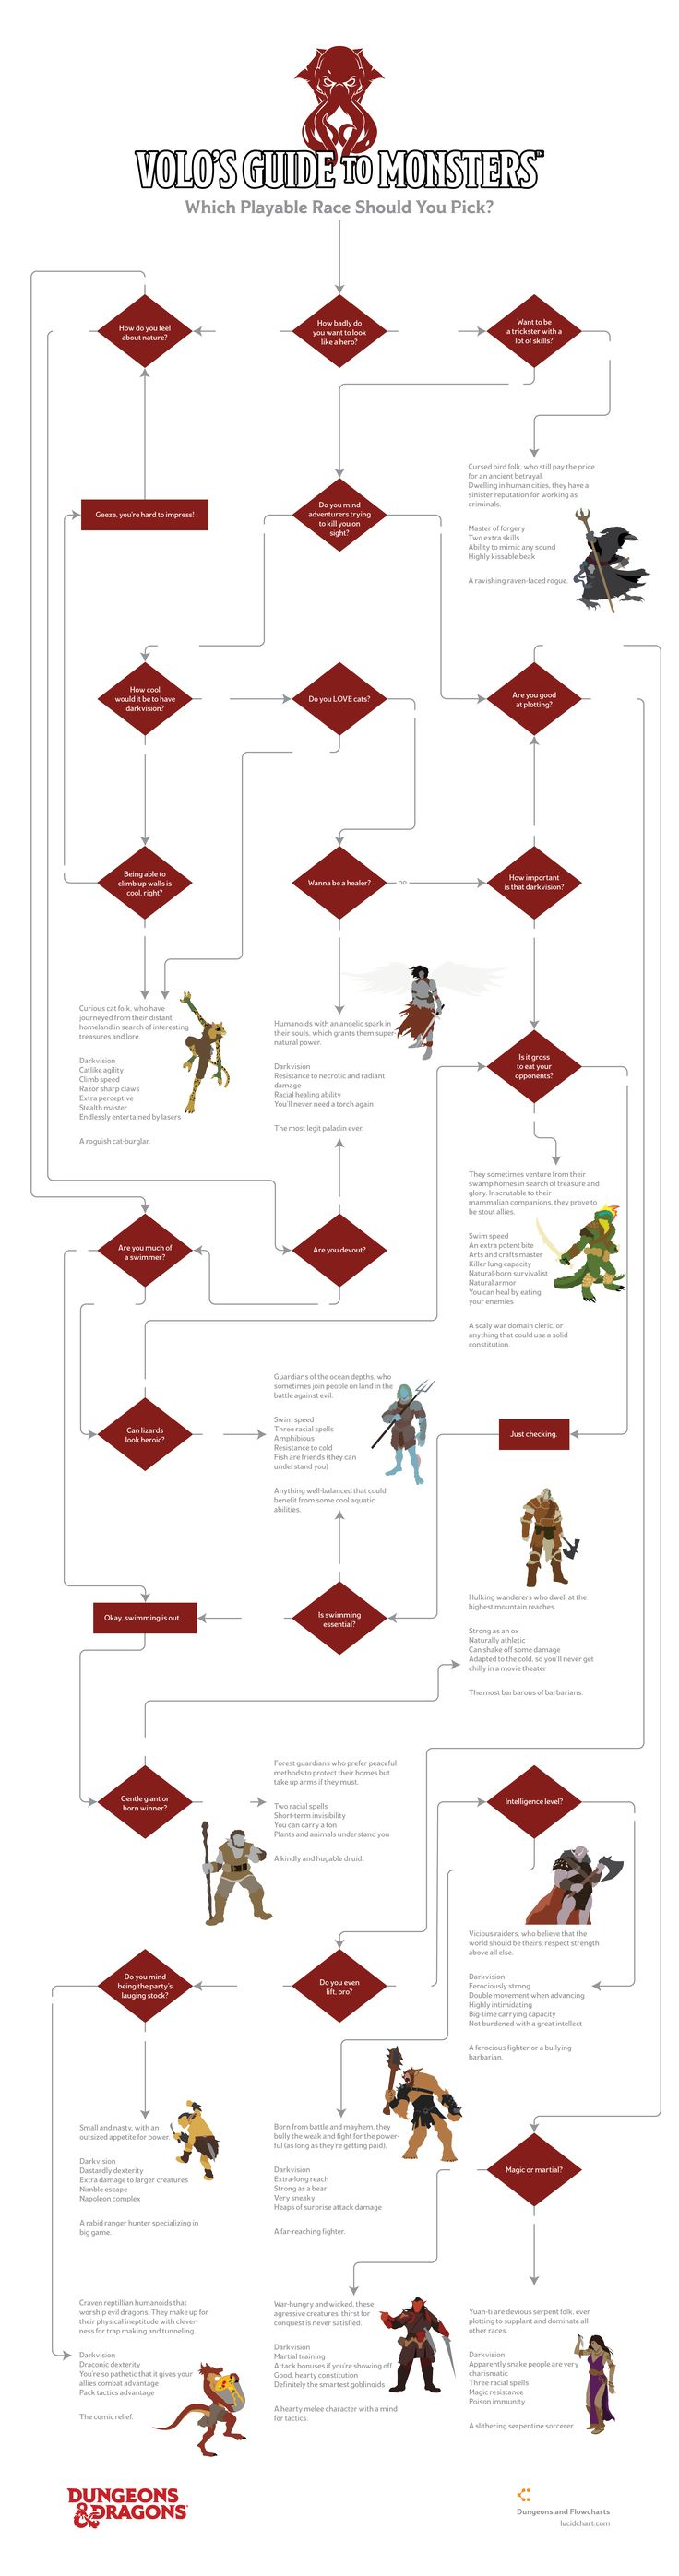 Looking to spice up your next D&D campaign? Make your next adventurer a monster! Figure out which one you should play with this Volo's Guide to Monsters flowchart.